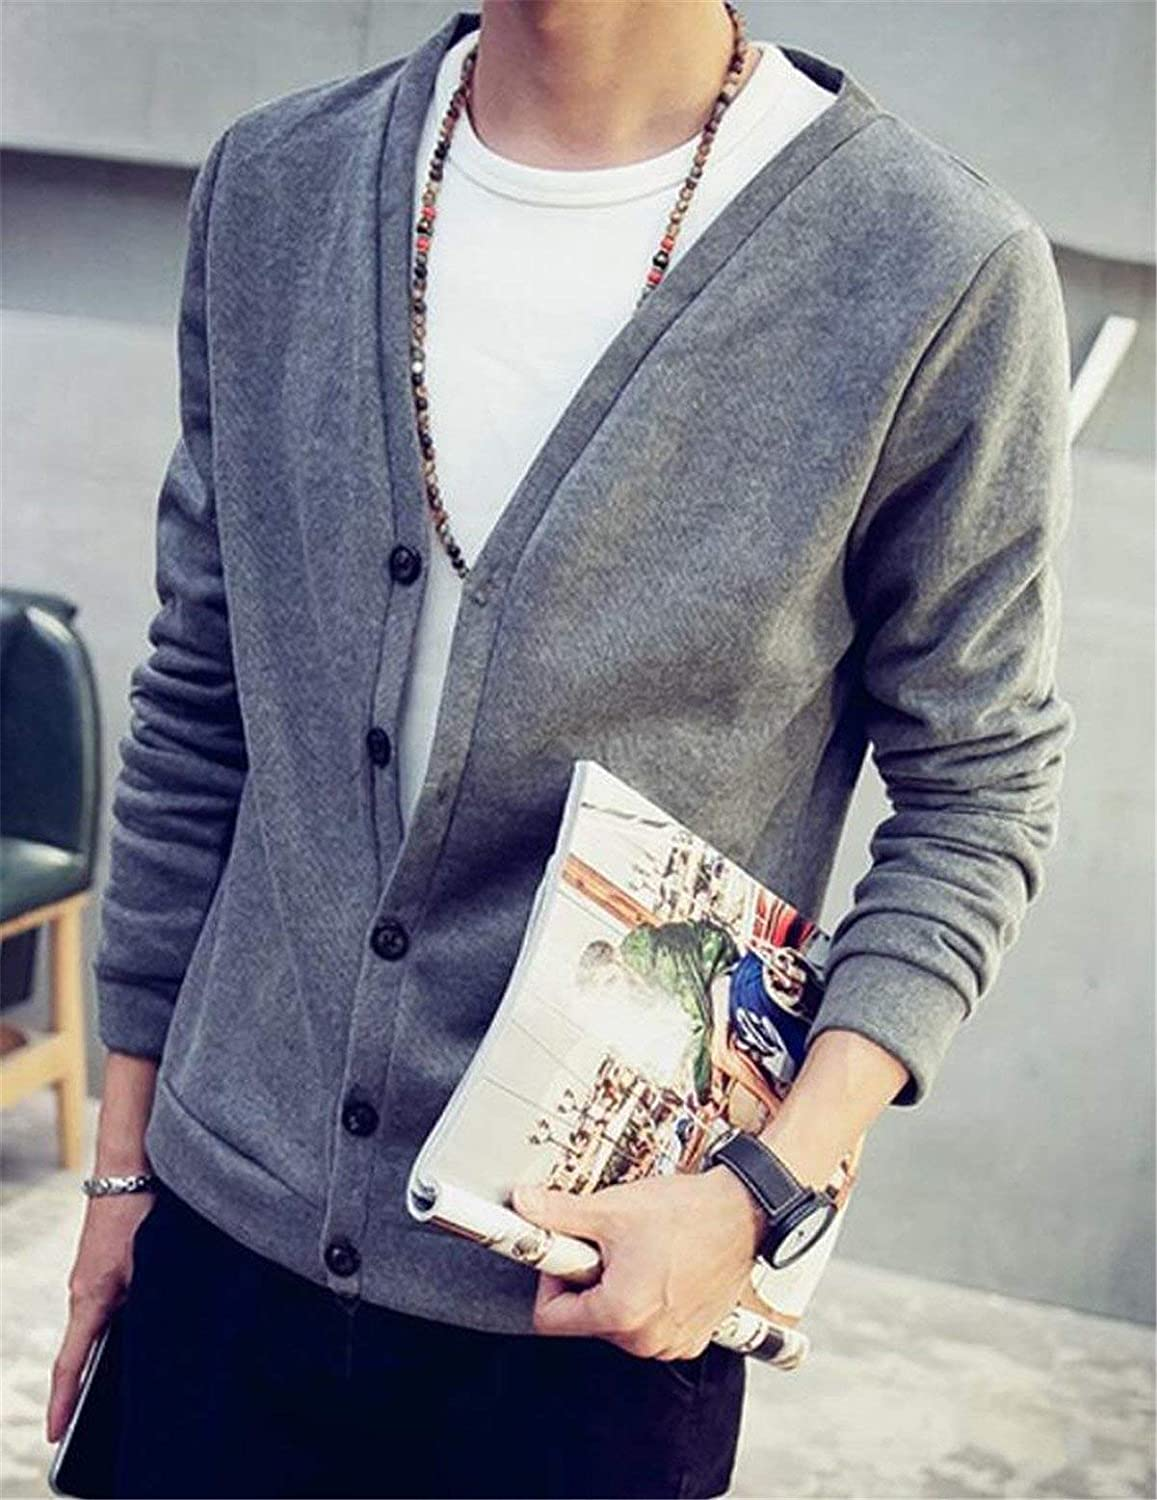 SELX-Men Solid Knit Long Sleeve Front Botton Casual Sweater Cardigan